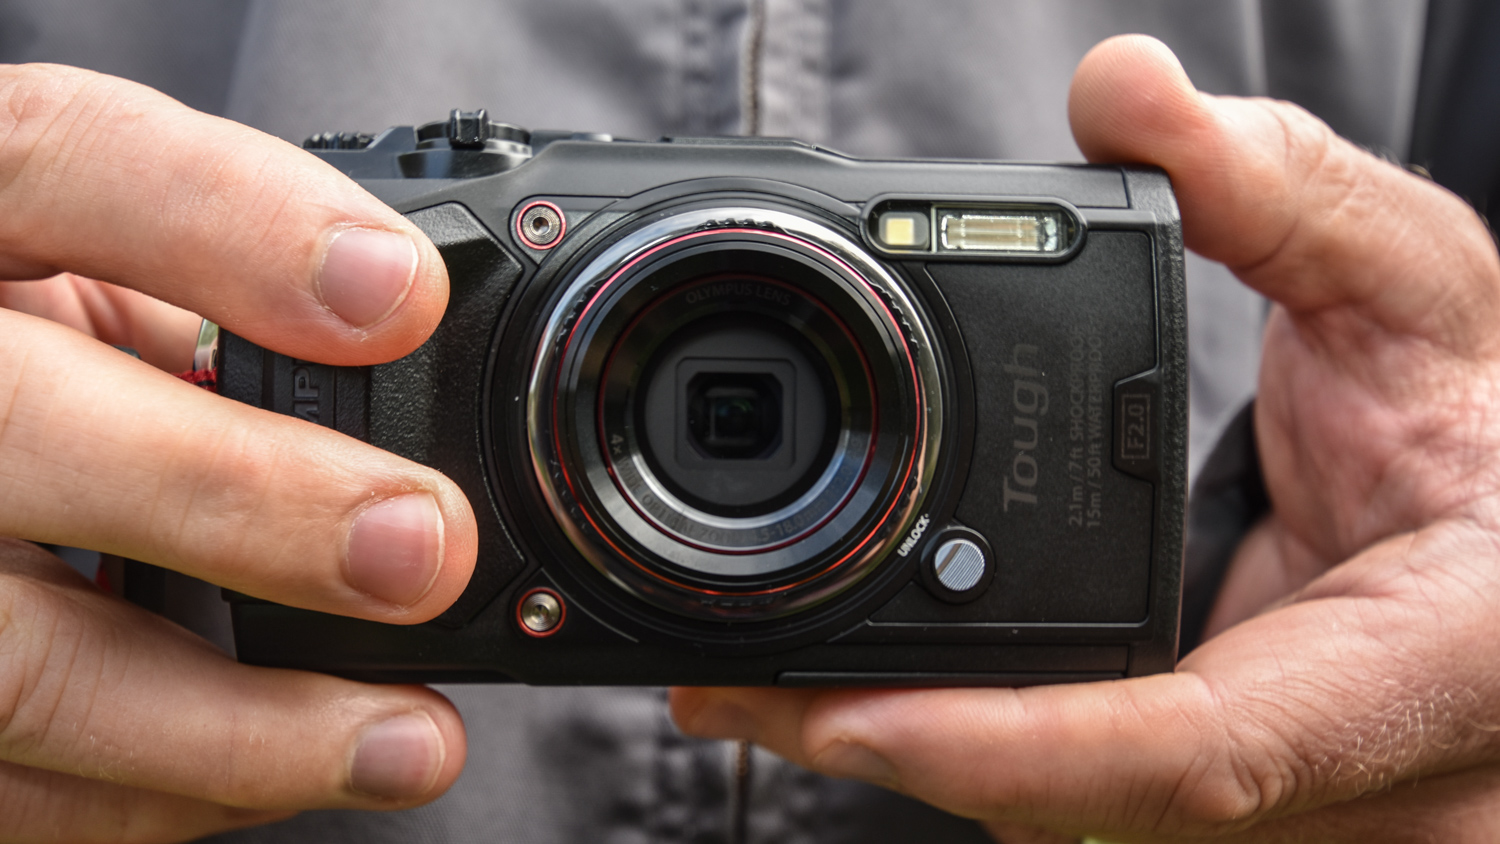 Absolute-Beginners-Guide-to-Camera-Settings-Start in auto mode